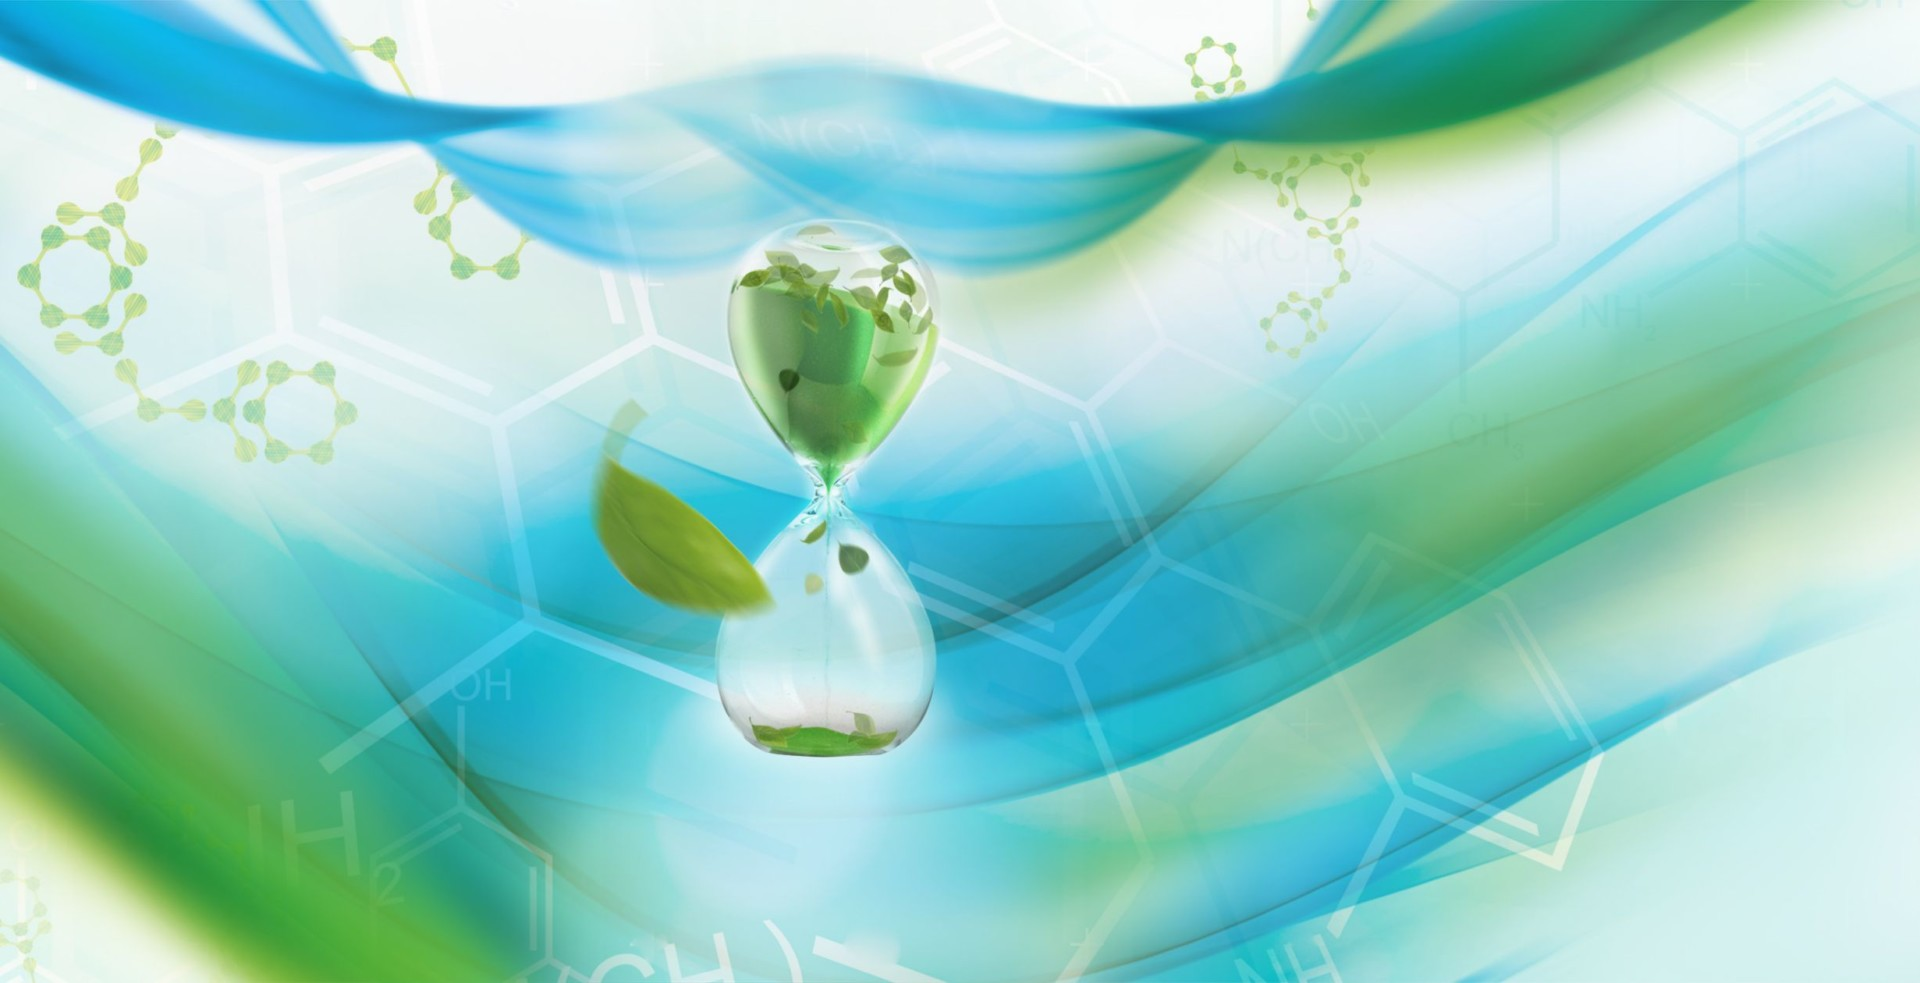 How patient do we have to be with the biobased economy?